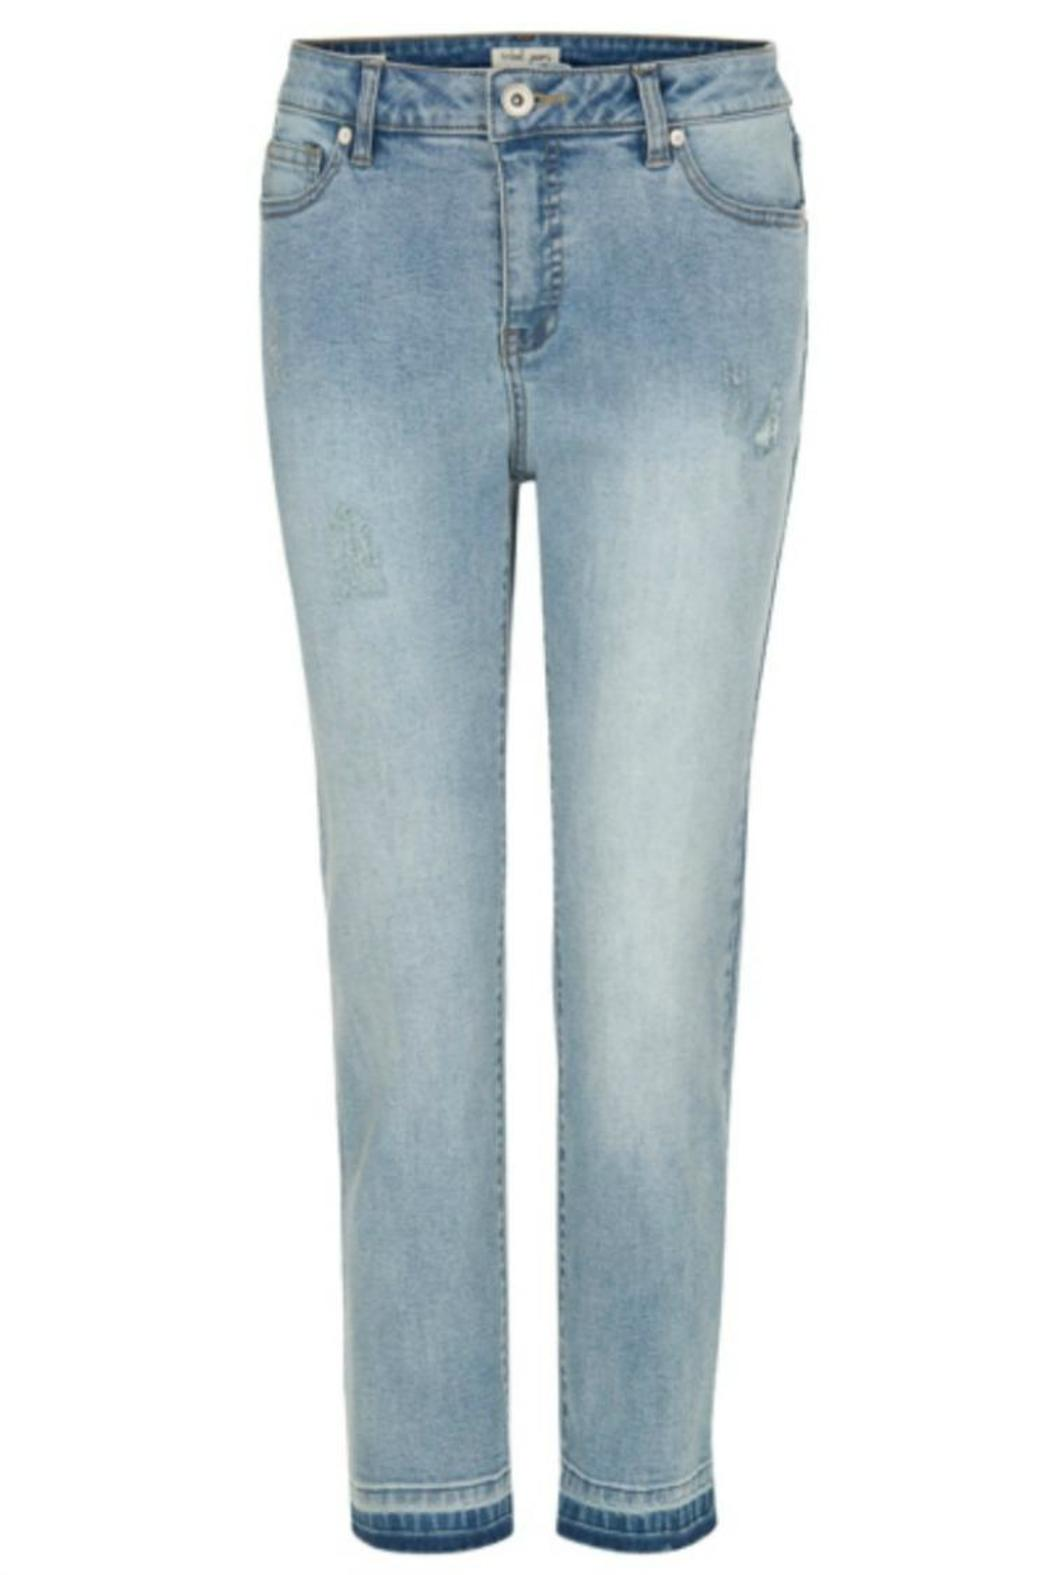 Tribal Jeans Distressed Blue Jeans - Main Image